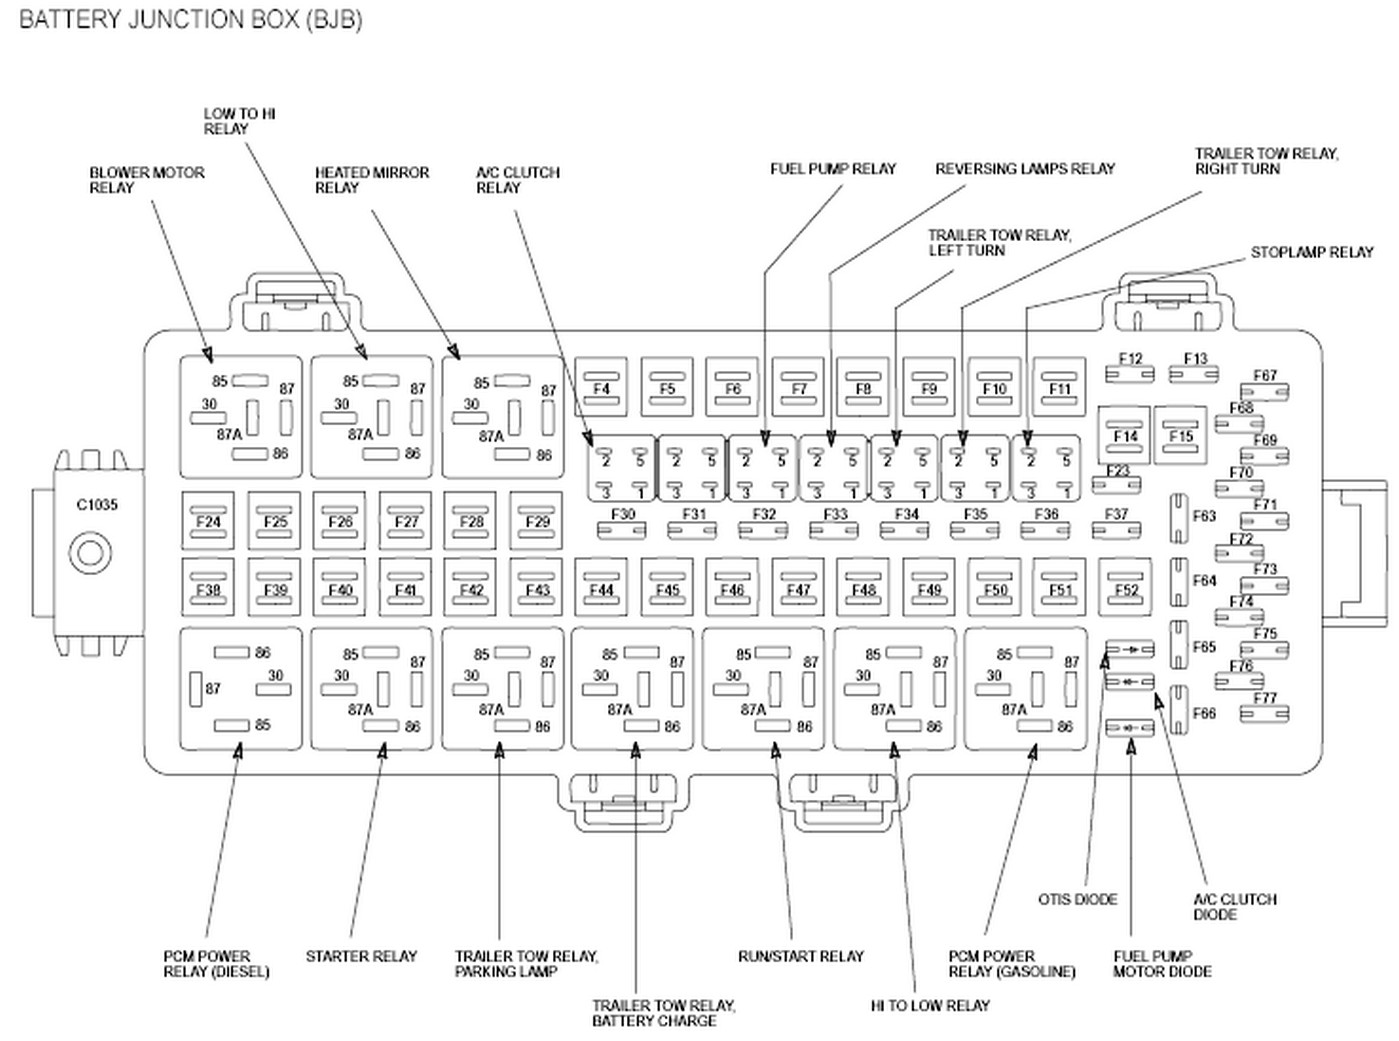 2011 ford f250 fuse box diagram Zoinyhu 2012 f250 fuse box location 2009 ford fusion fuse box diagram fuse box diagram 1991 ford f150 pickup at fashall.co